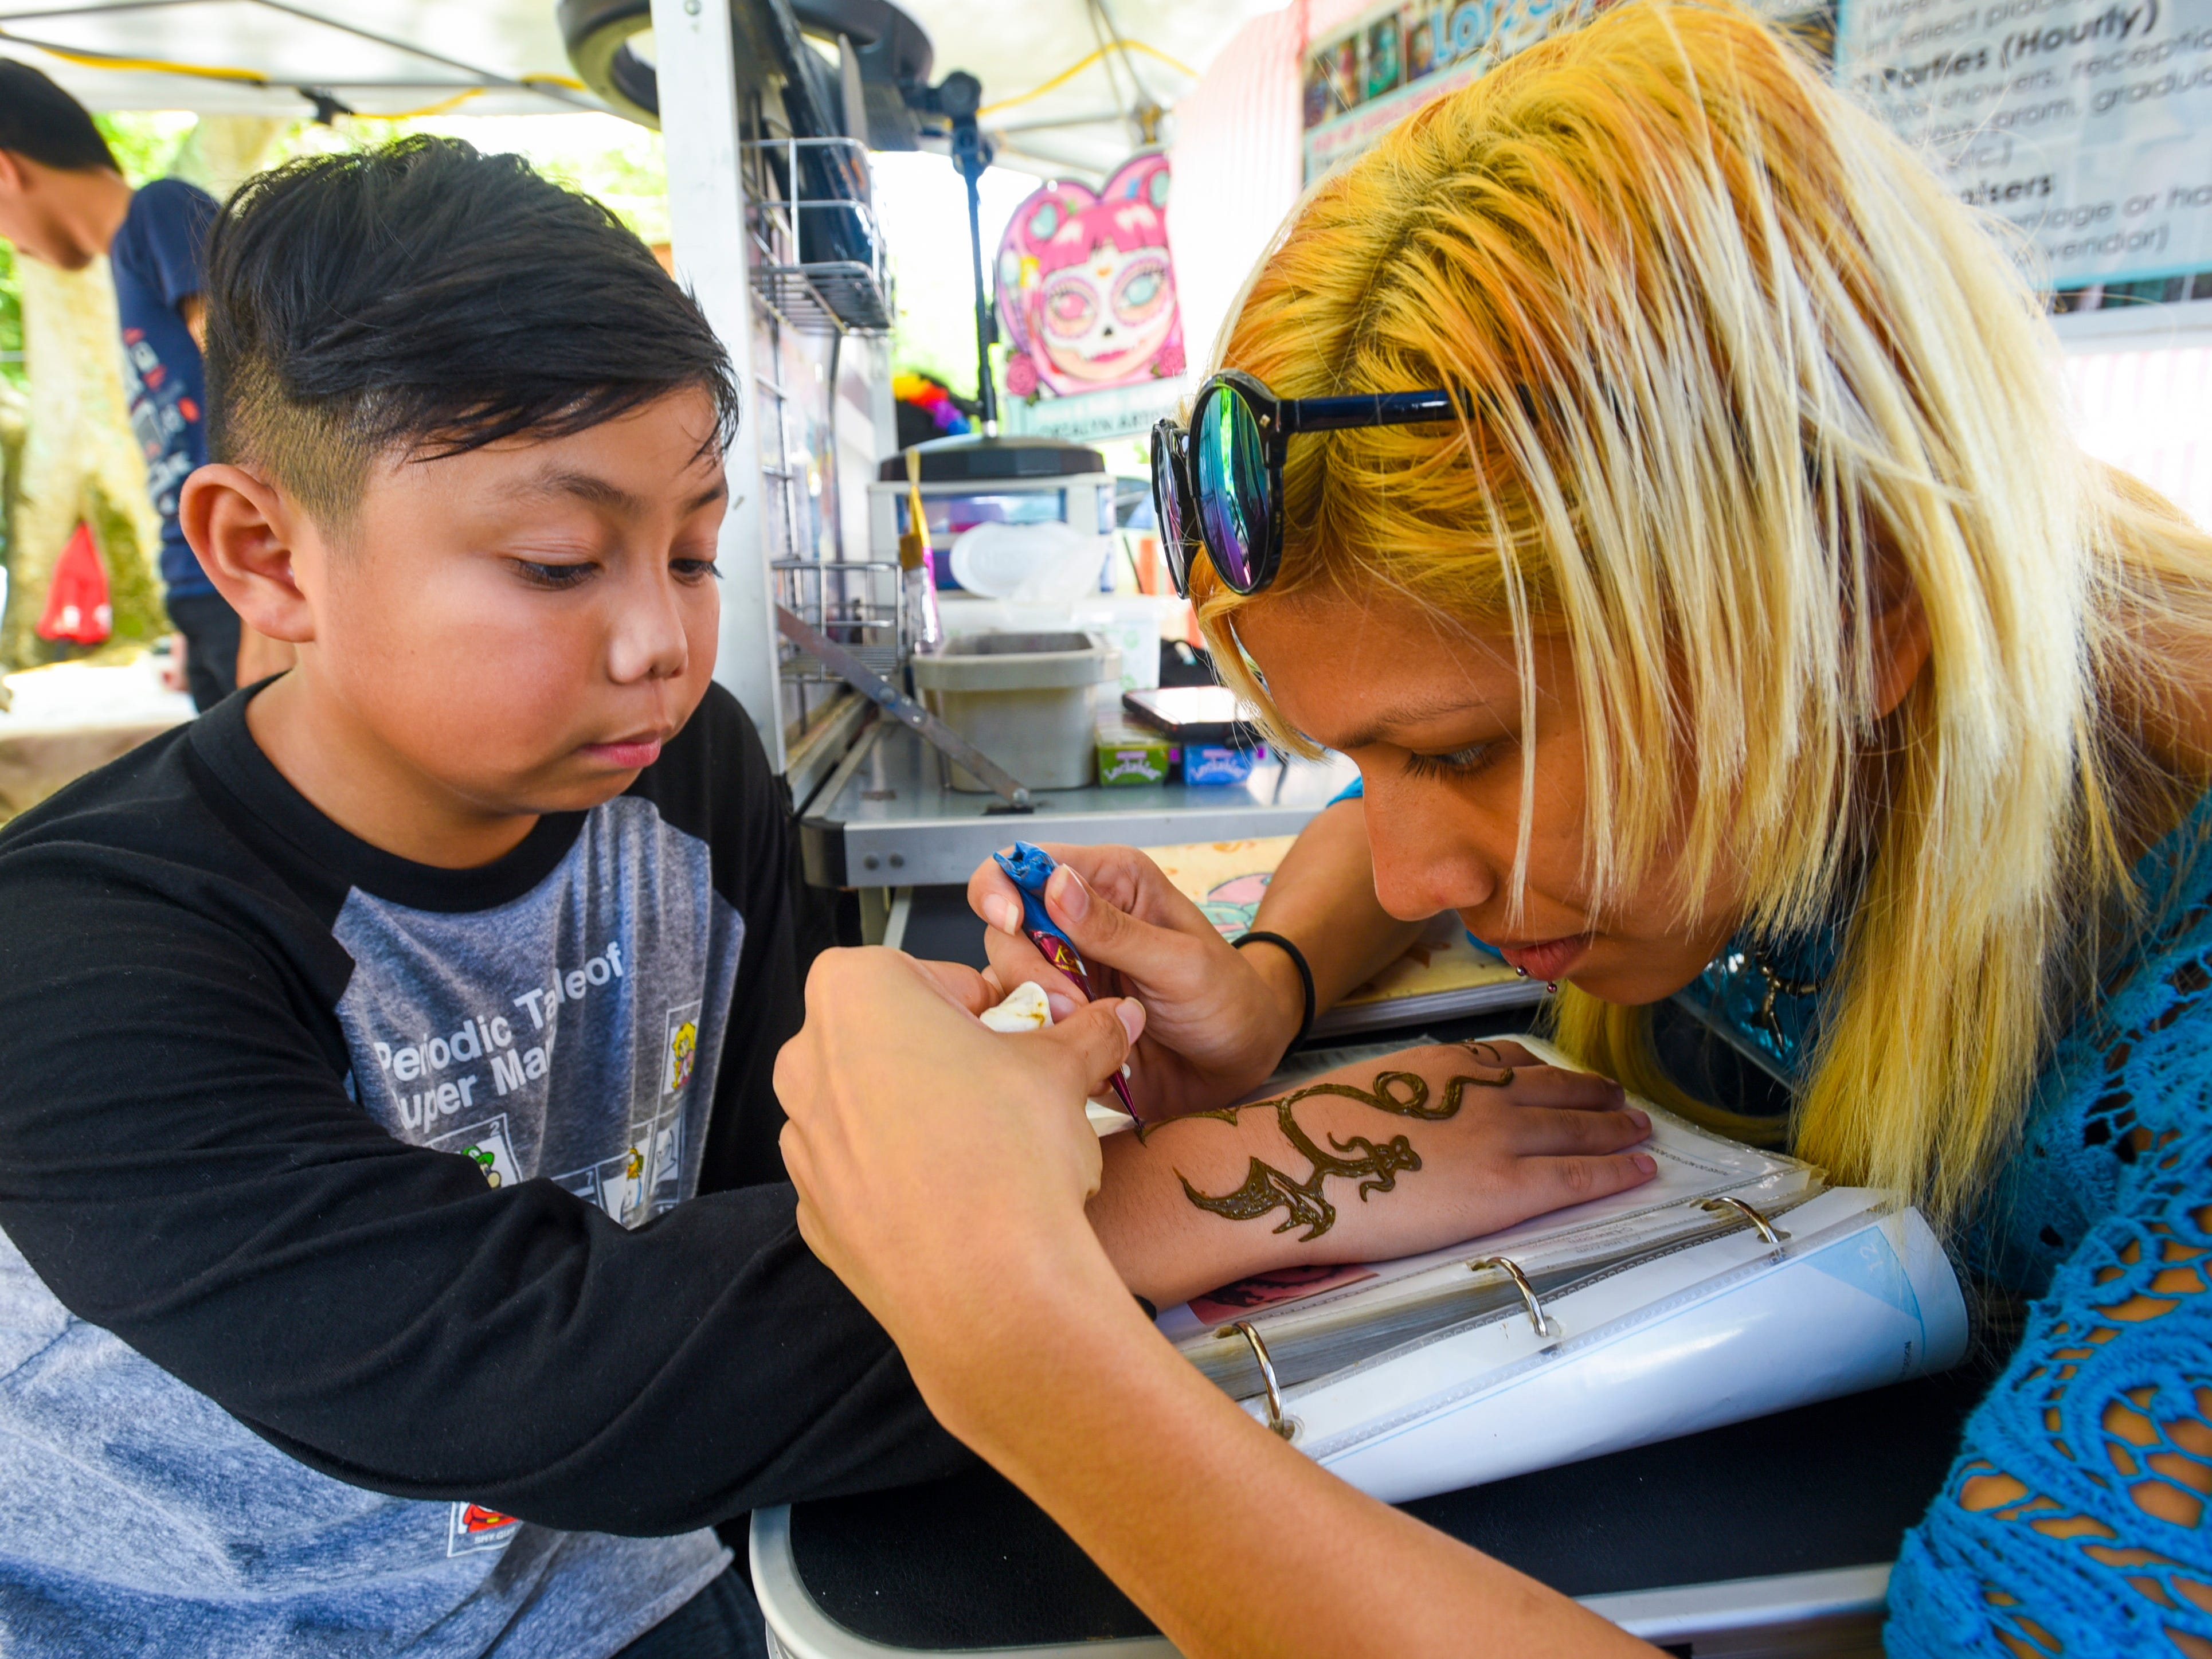 Caelan Borja, 10, gets a detailed henna tattoo of a dragon, by artisan Alexis Cruz, during the annual Malesso Fiestan Tasi on Saturday, Dec. 1, 2018 at the Malesso Veteran Sons & Daughters Pier Park. The village festival is slated to continue on Sunday, Dec. 2, with plans of a spearfishing competition, personal watercraft racing, live entertainment and an evening fireworks show being held.